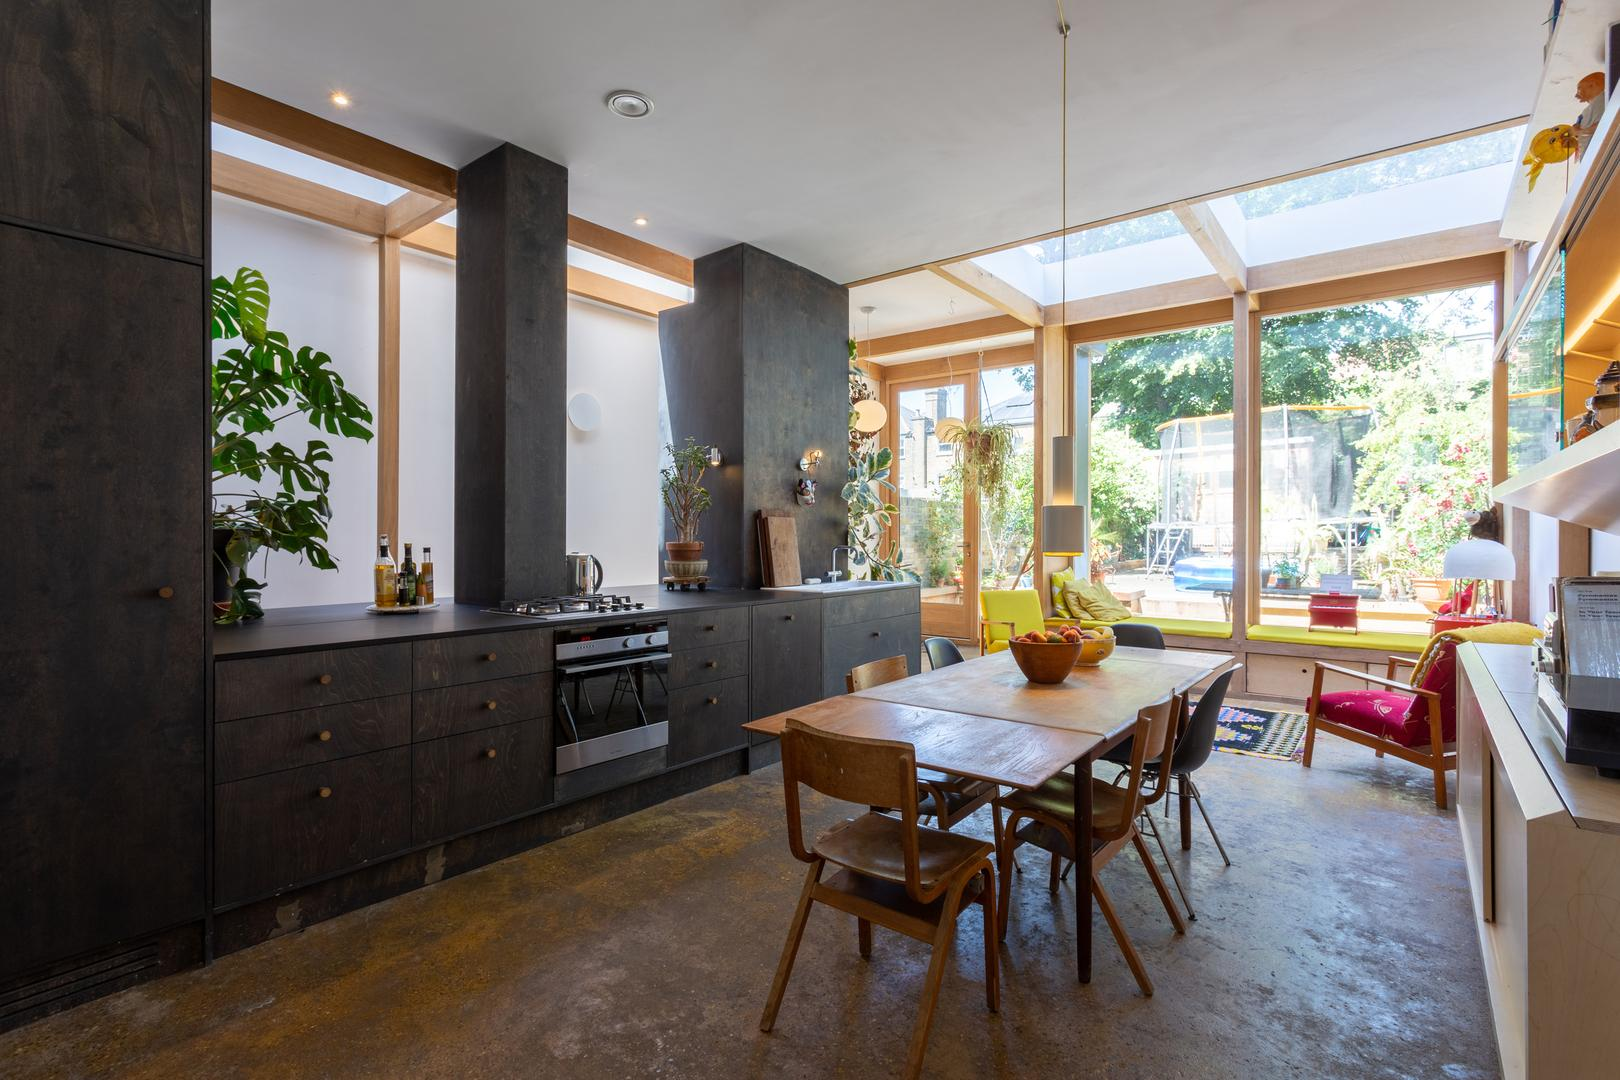 Property Image 1 - Spectacularly Well Designed Hackney Home with Garden